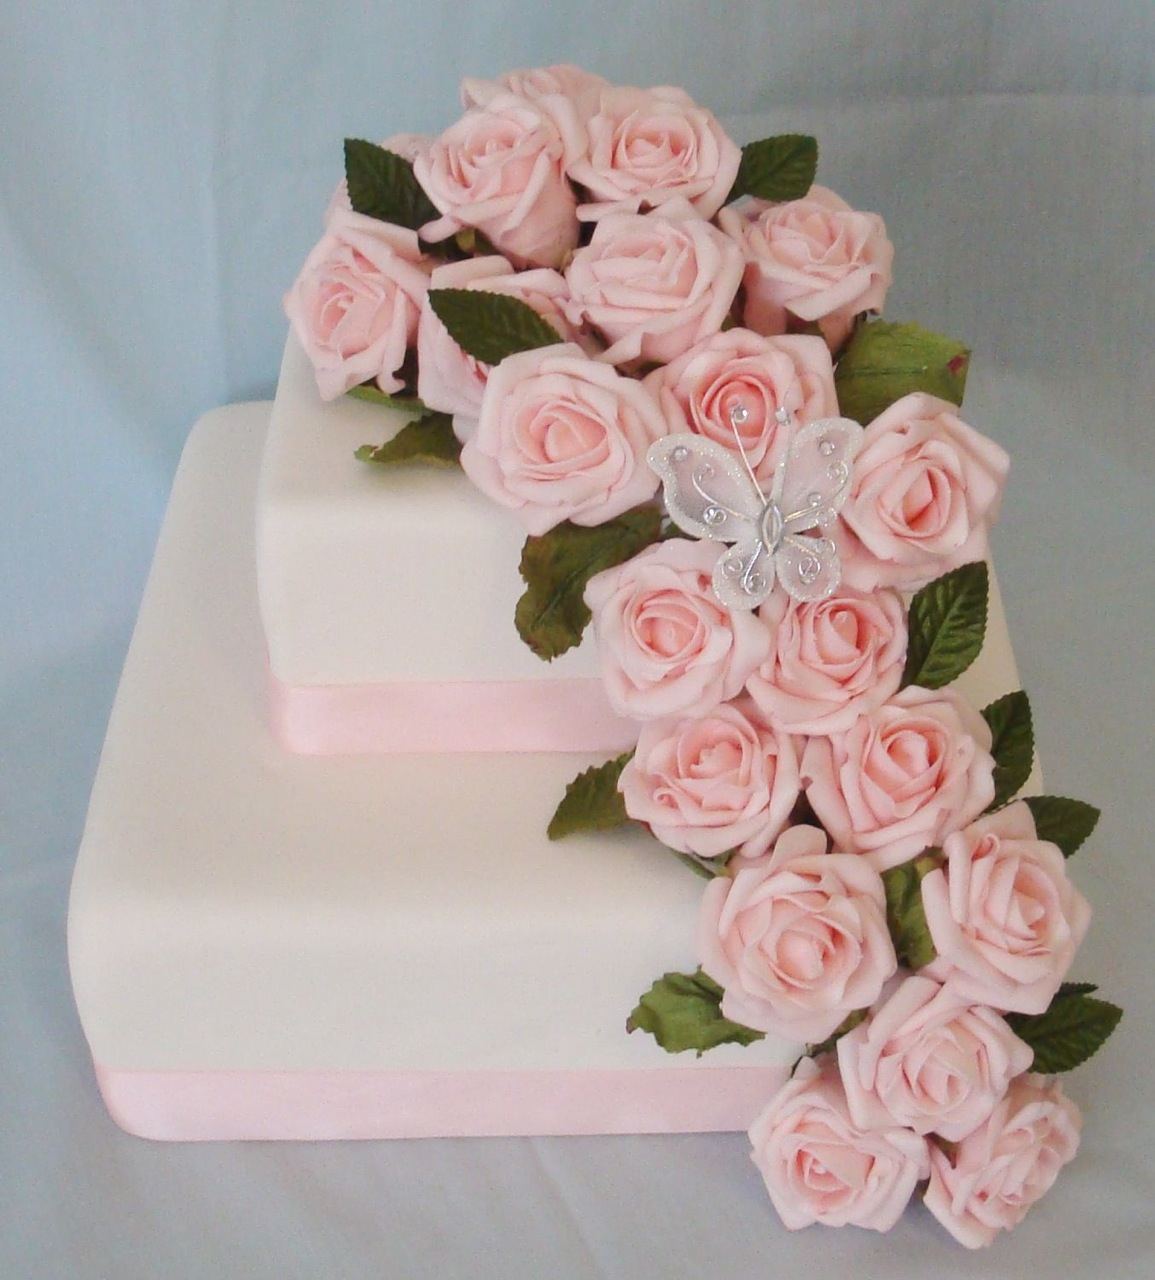 Cake Place: 2 Tier Square Wedding Cake with Pink Roses and Butterfly